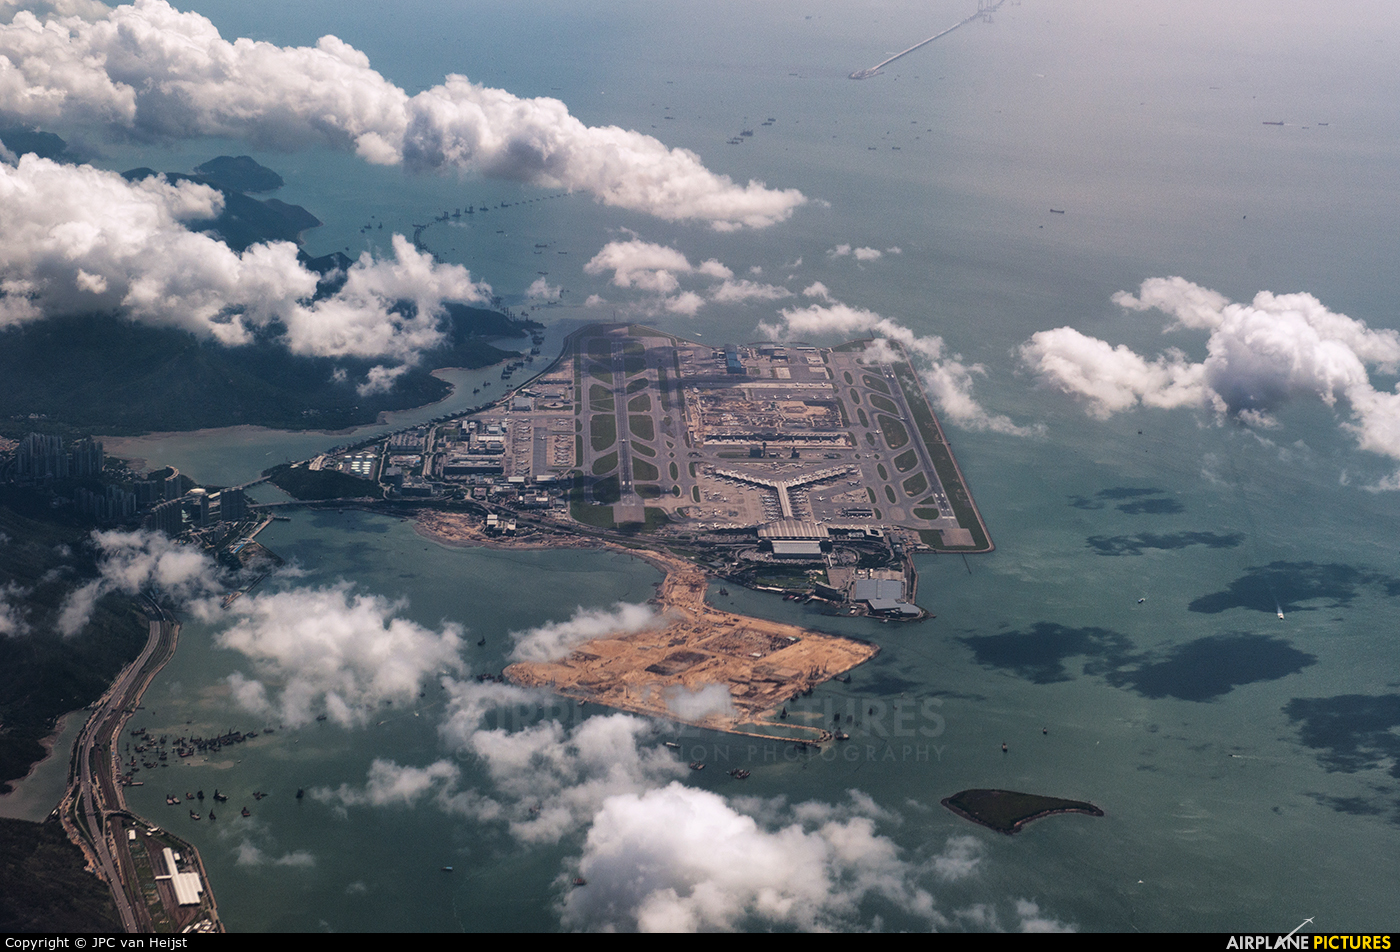 - Airport Overview - aircraft at HKG - Chek Lap Kok Intl